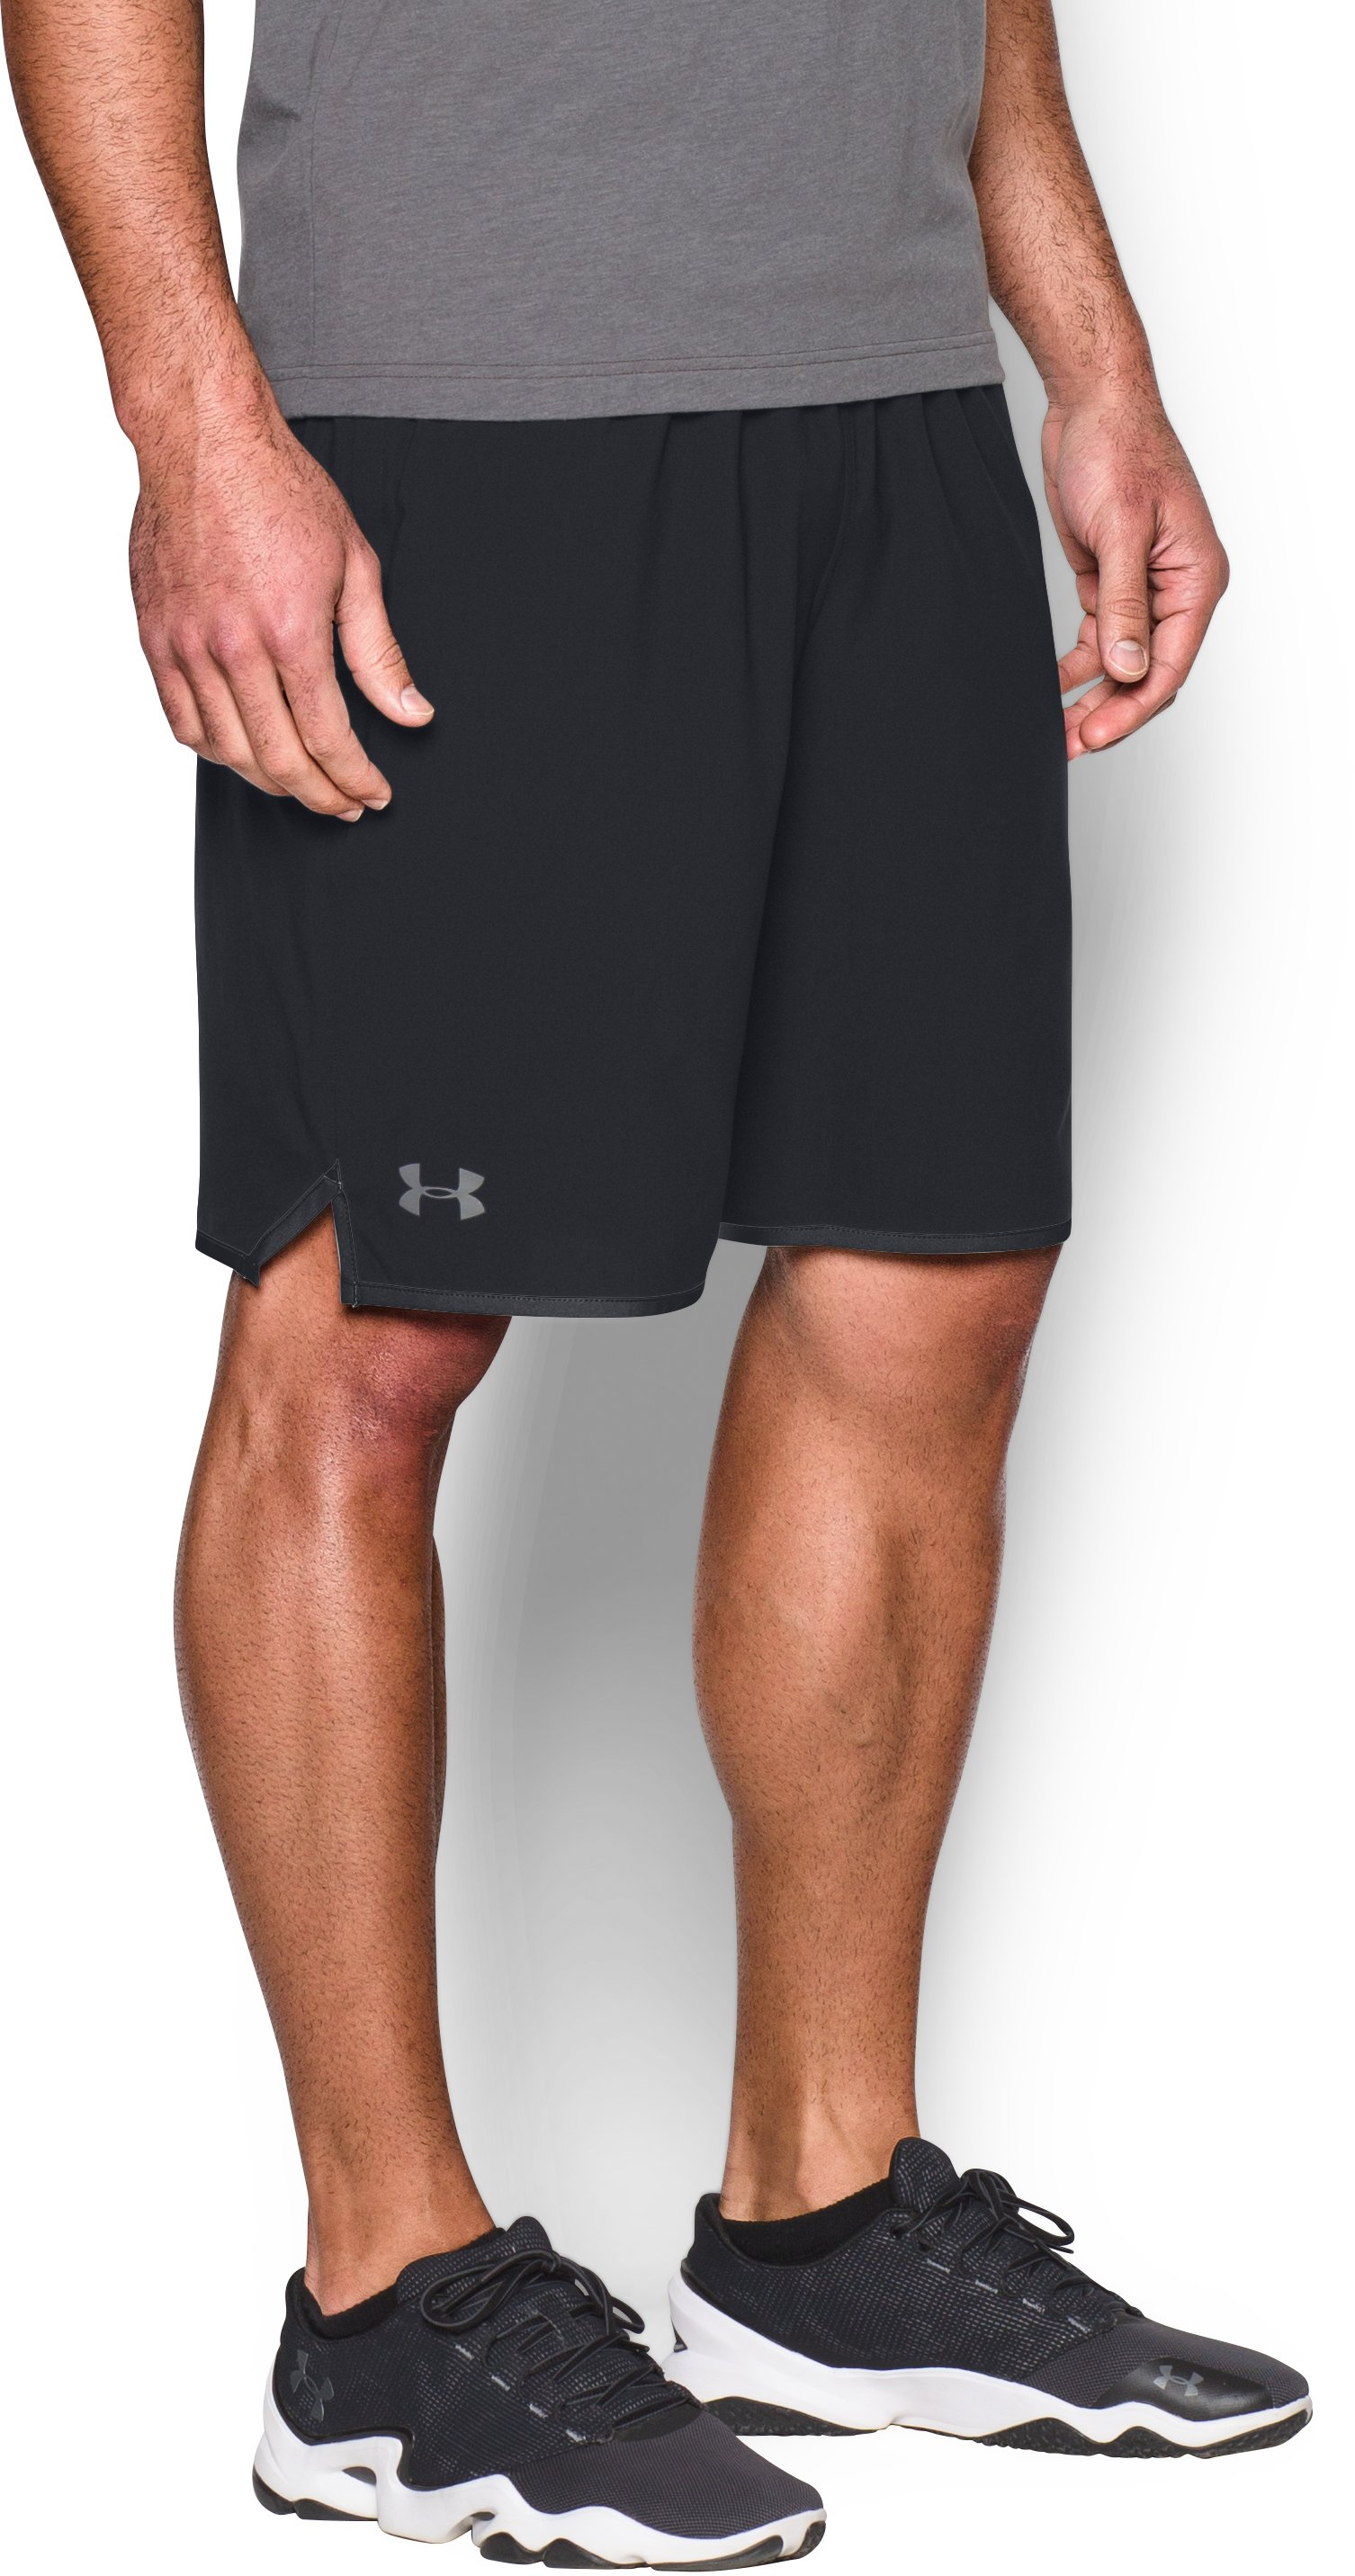 "black woven shorts Men's UA Qualifier 9"" Woven Shorts Great shorts...Great shorts!...Very Nice Shorts"